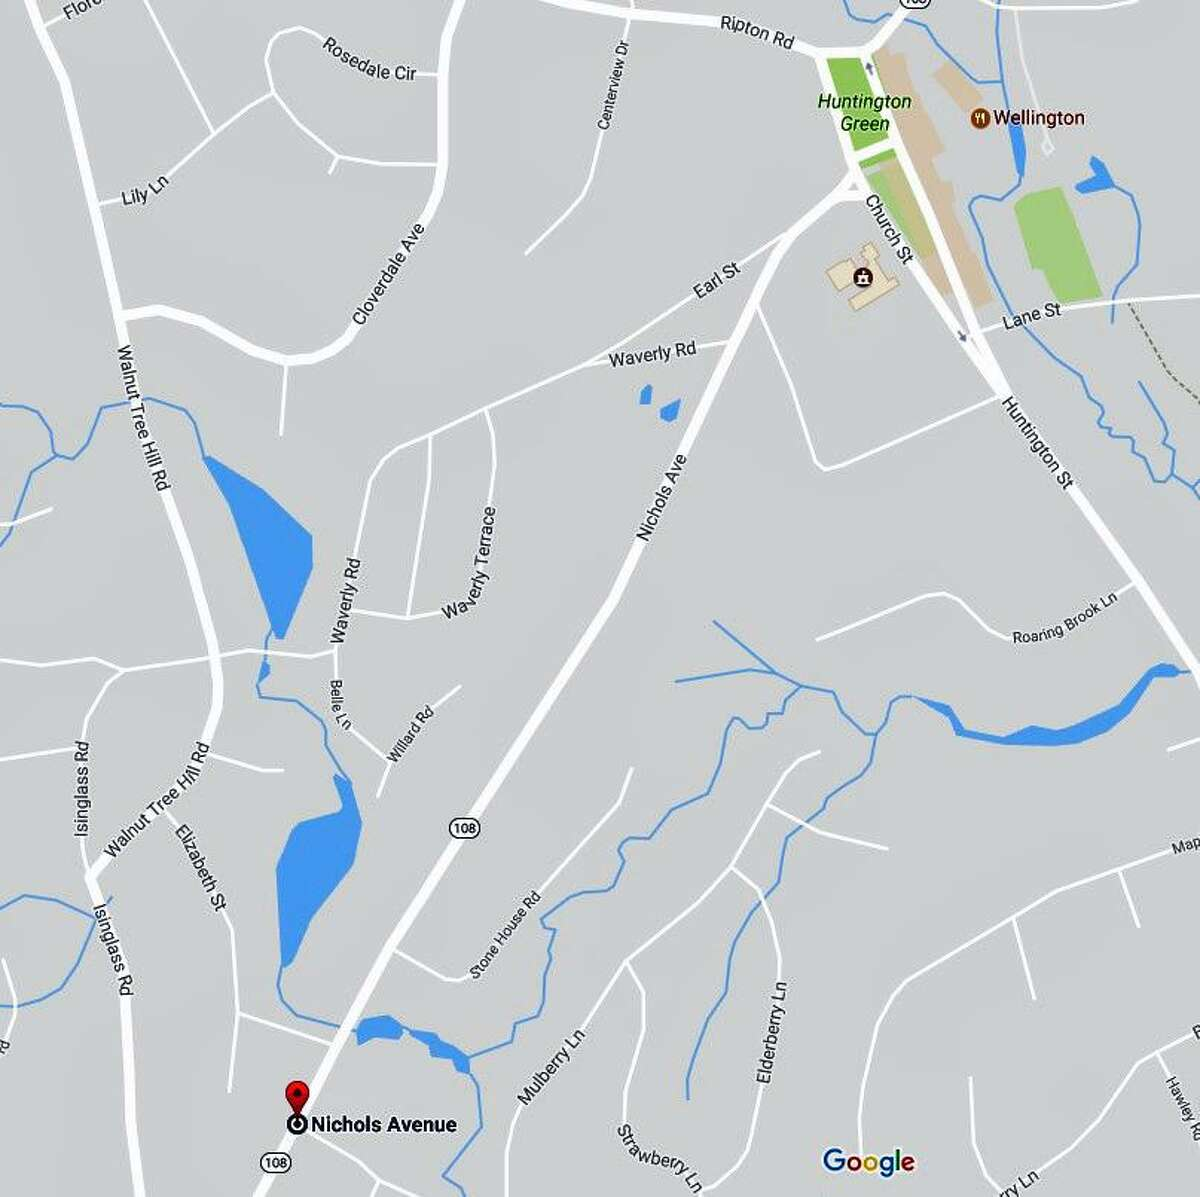 The state Department of Transportation is planning a resurfacing of a 1.12-mile section of Route 108 in the Huntington section of Shelton from May 22 to June 8, 2017. The work is planned between Bayberry Lane to Ripton Road near the Huntington Green.